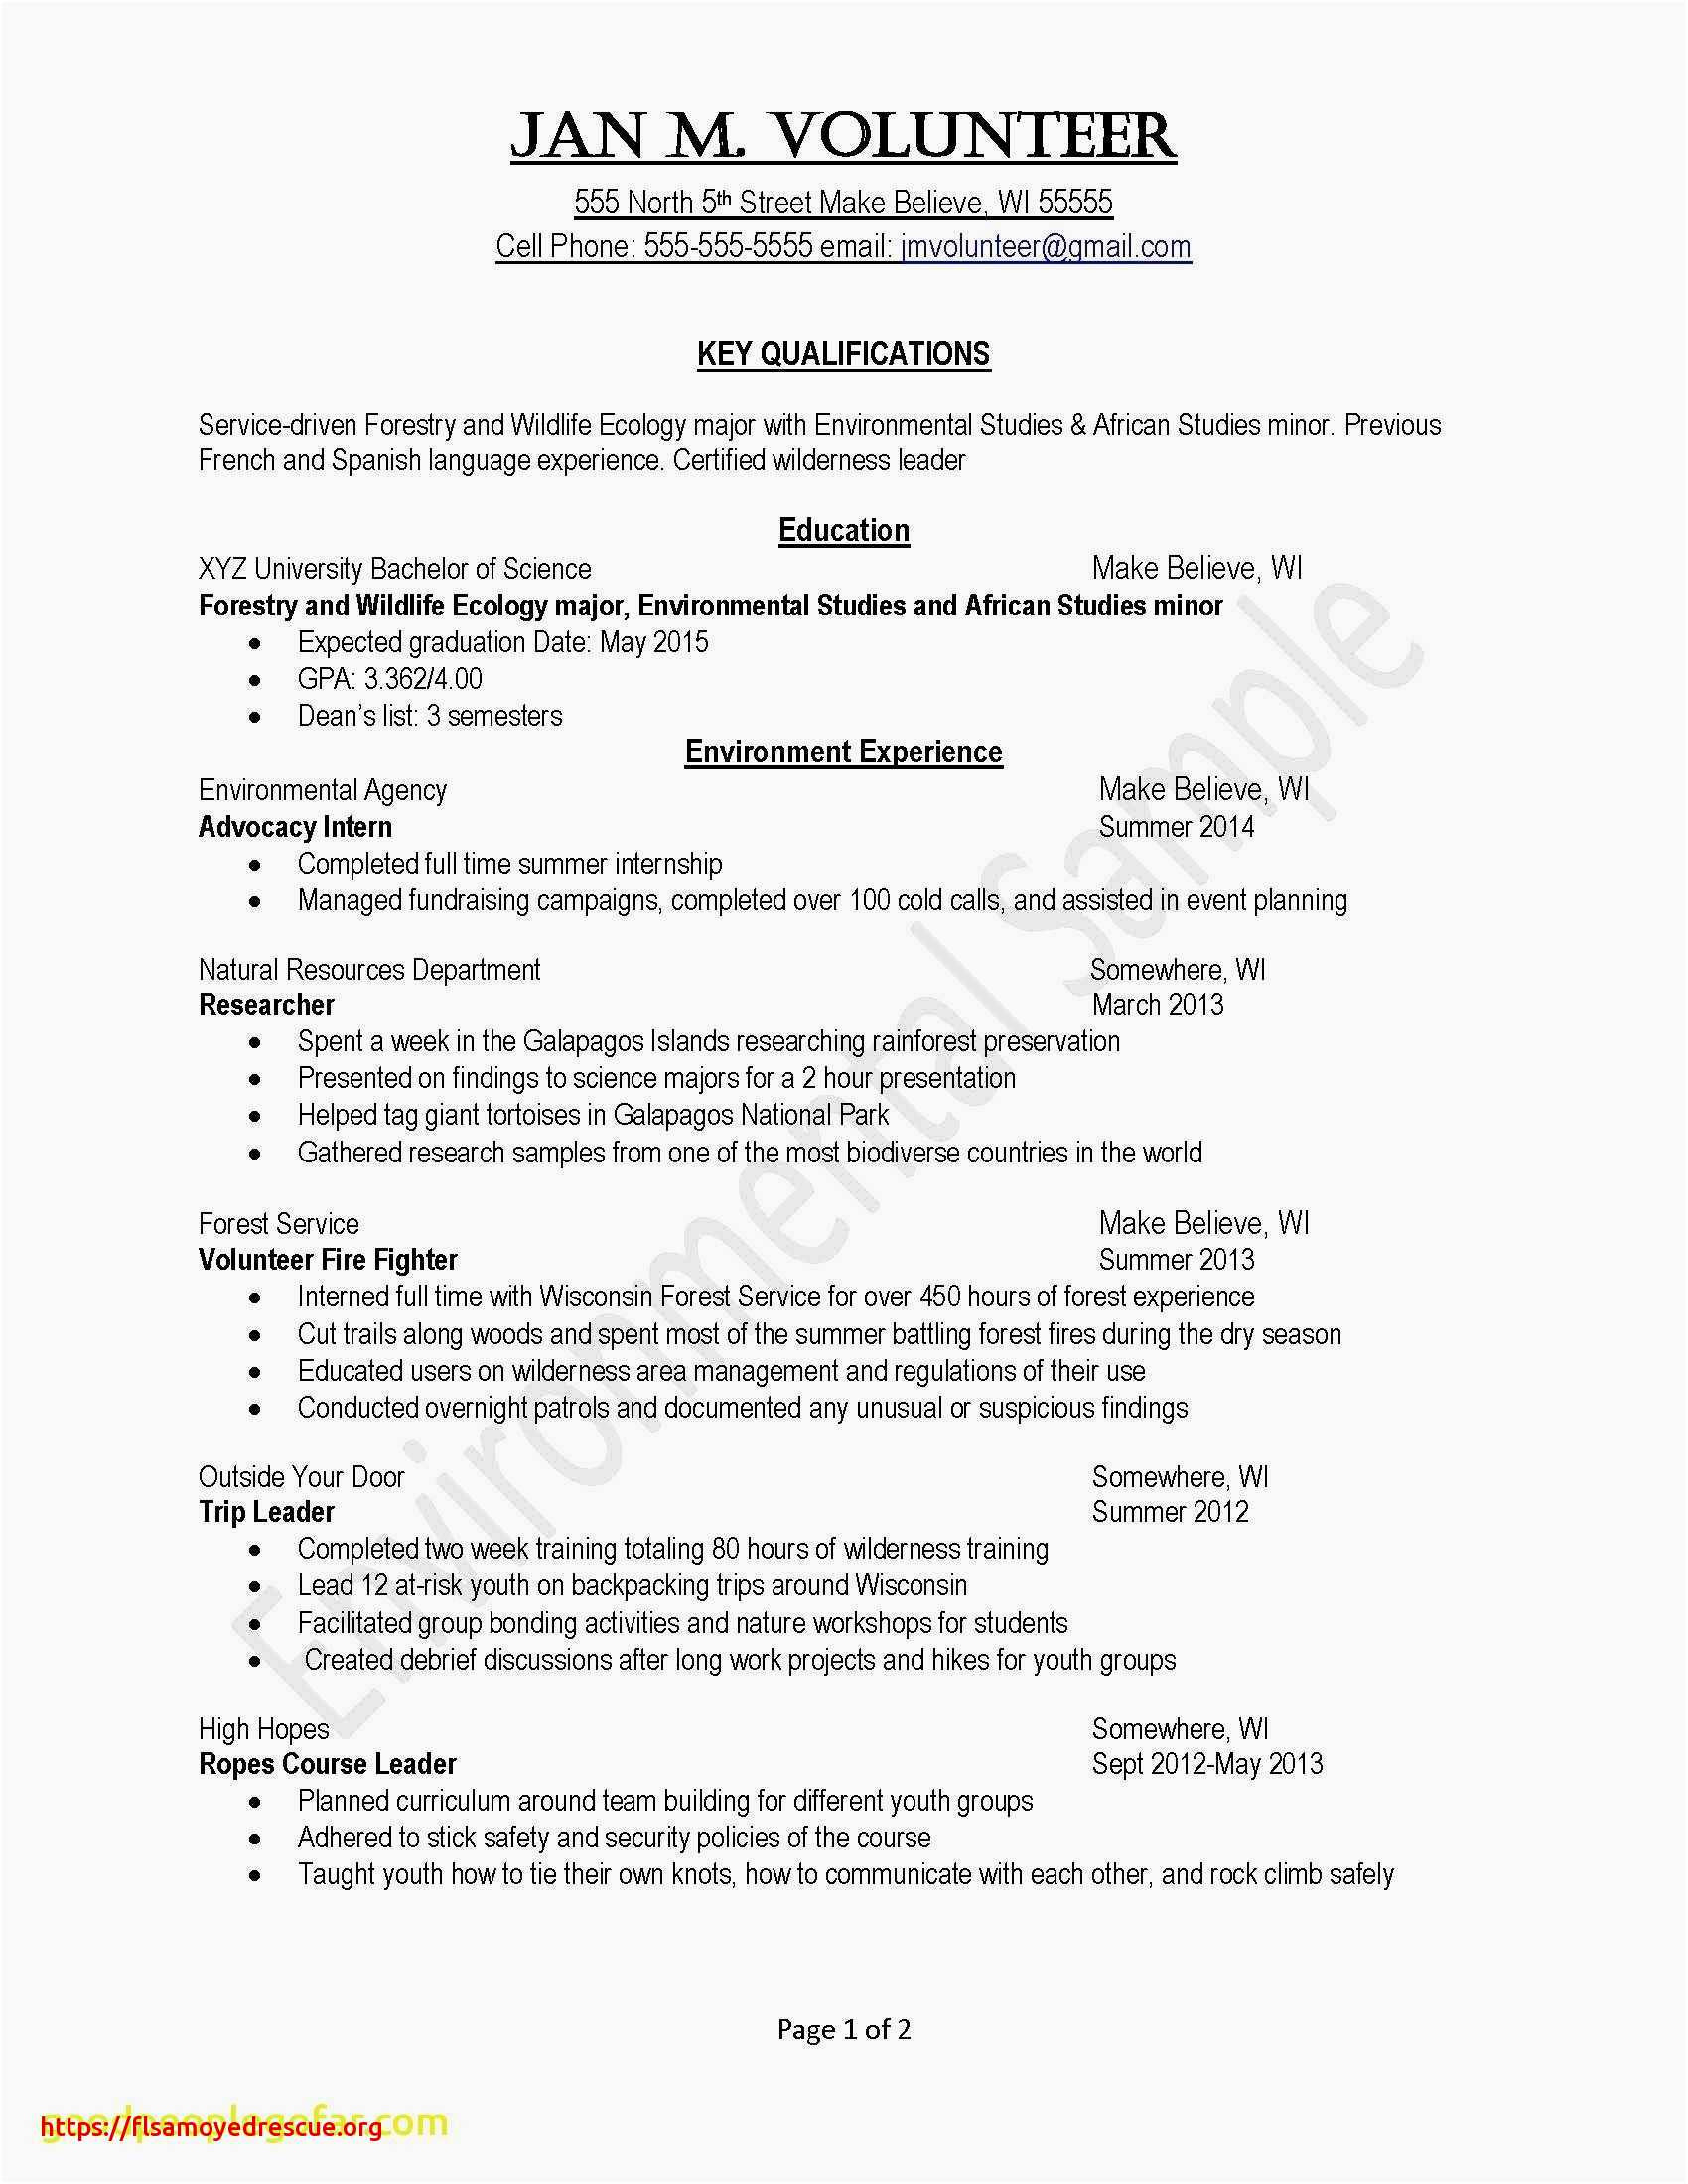 Brief Summary for Resume - How to Write A Professional Summary Resume Simple Fresh Examples